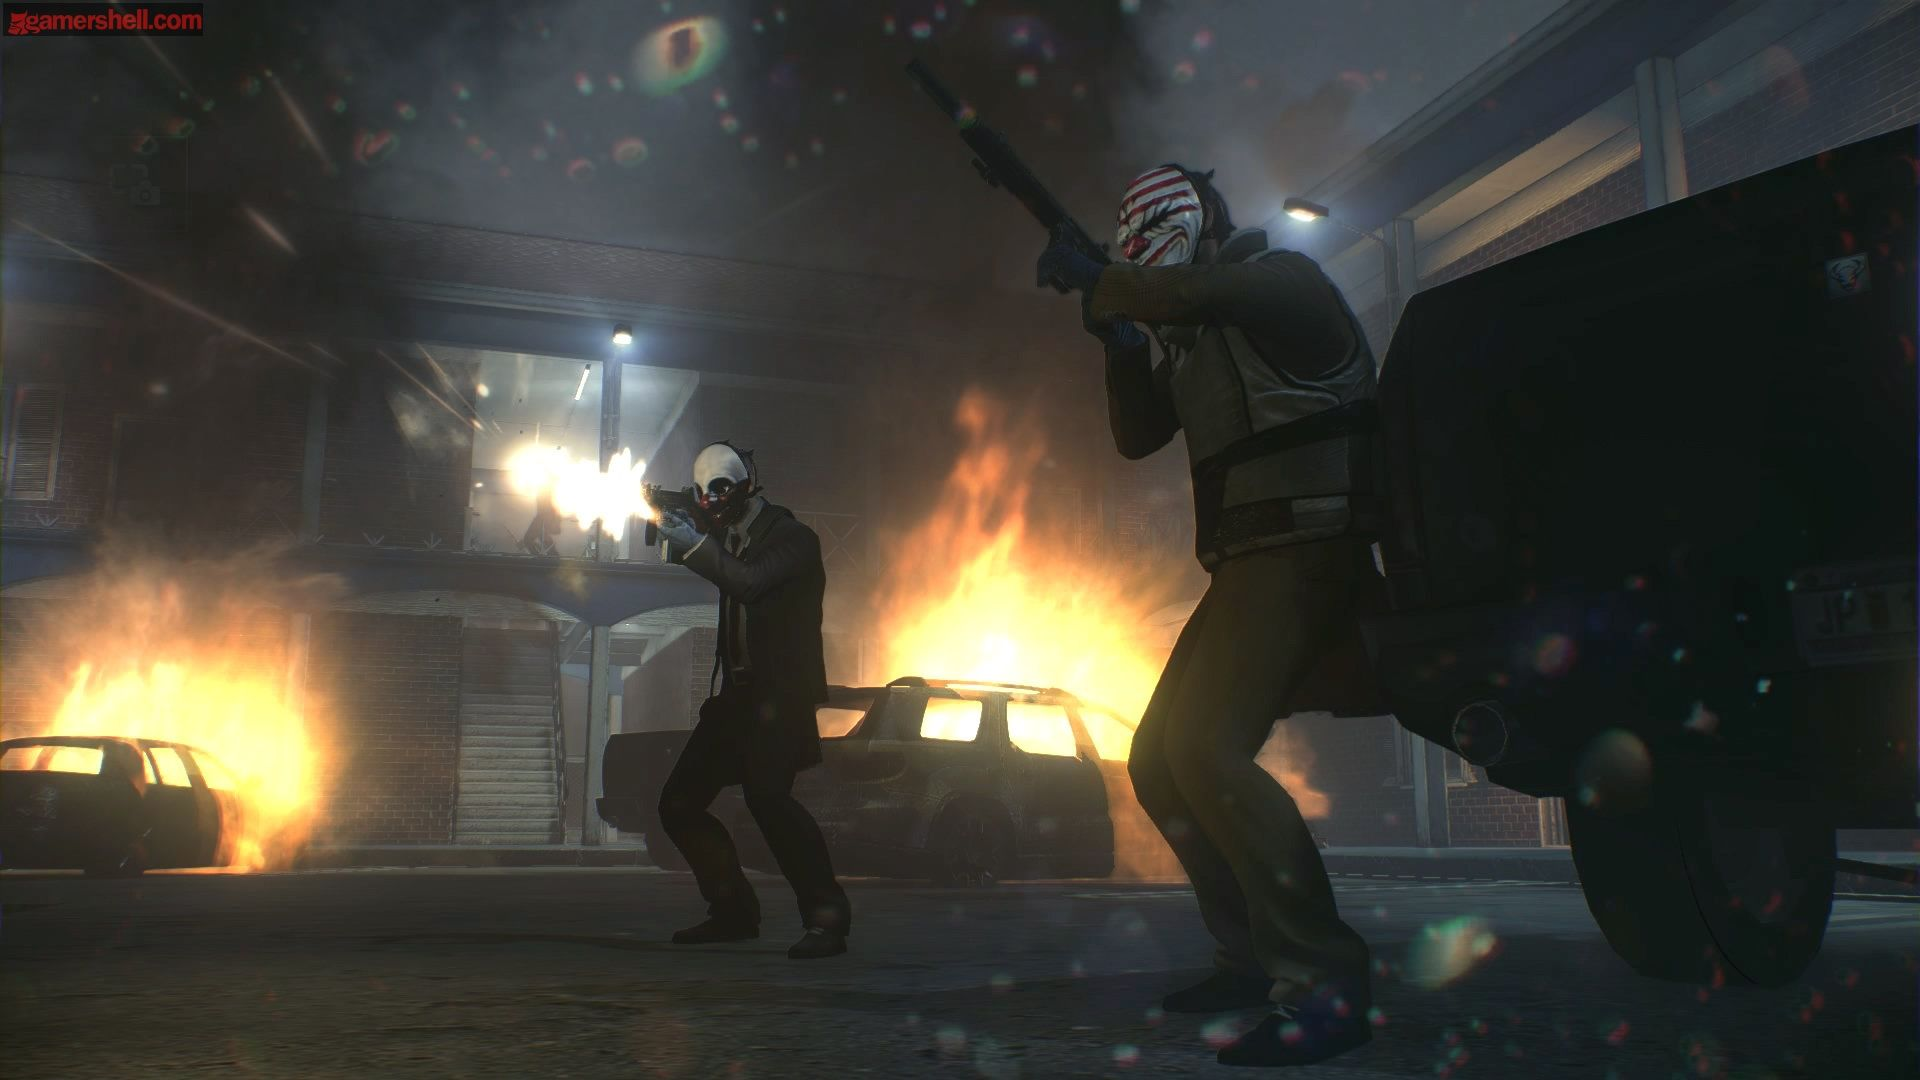 Payday Porn payday 2: crimewave edition gets a release date, and epic